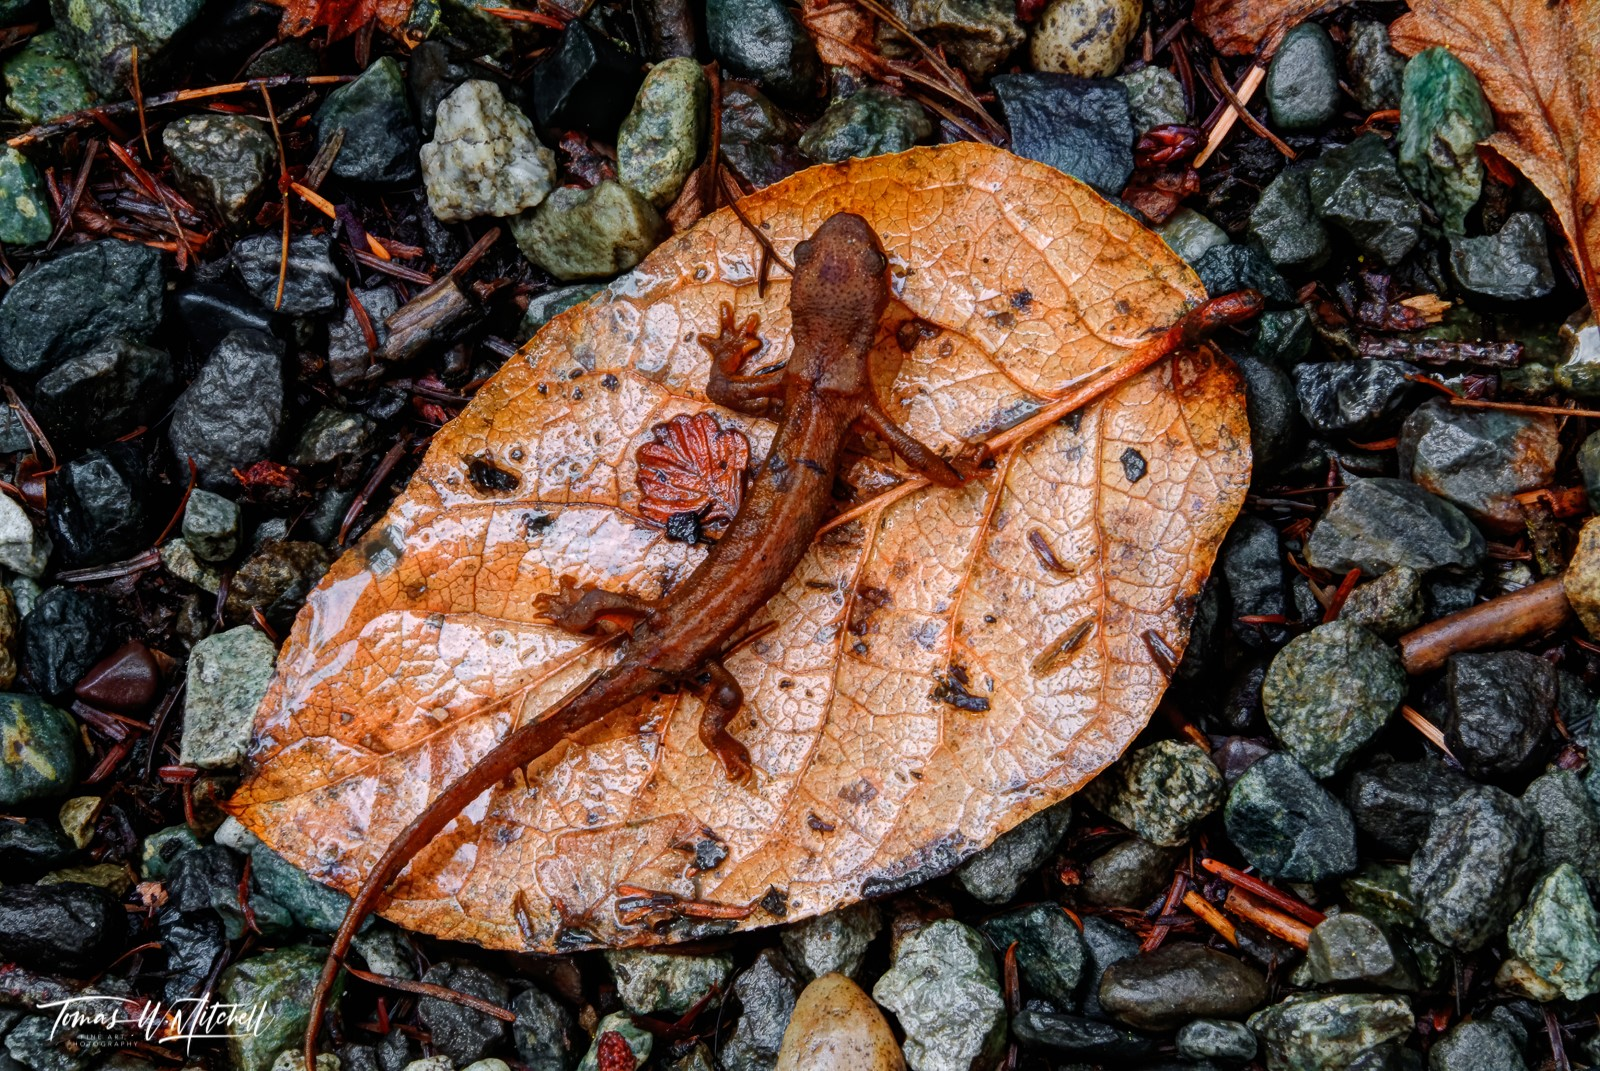 limited edition, fine art, prints, oregon, coast, newt, leaf, photograph, brown, gray, wet, photo